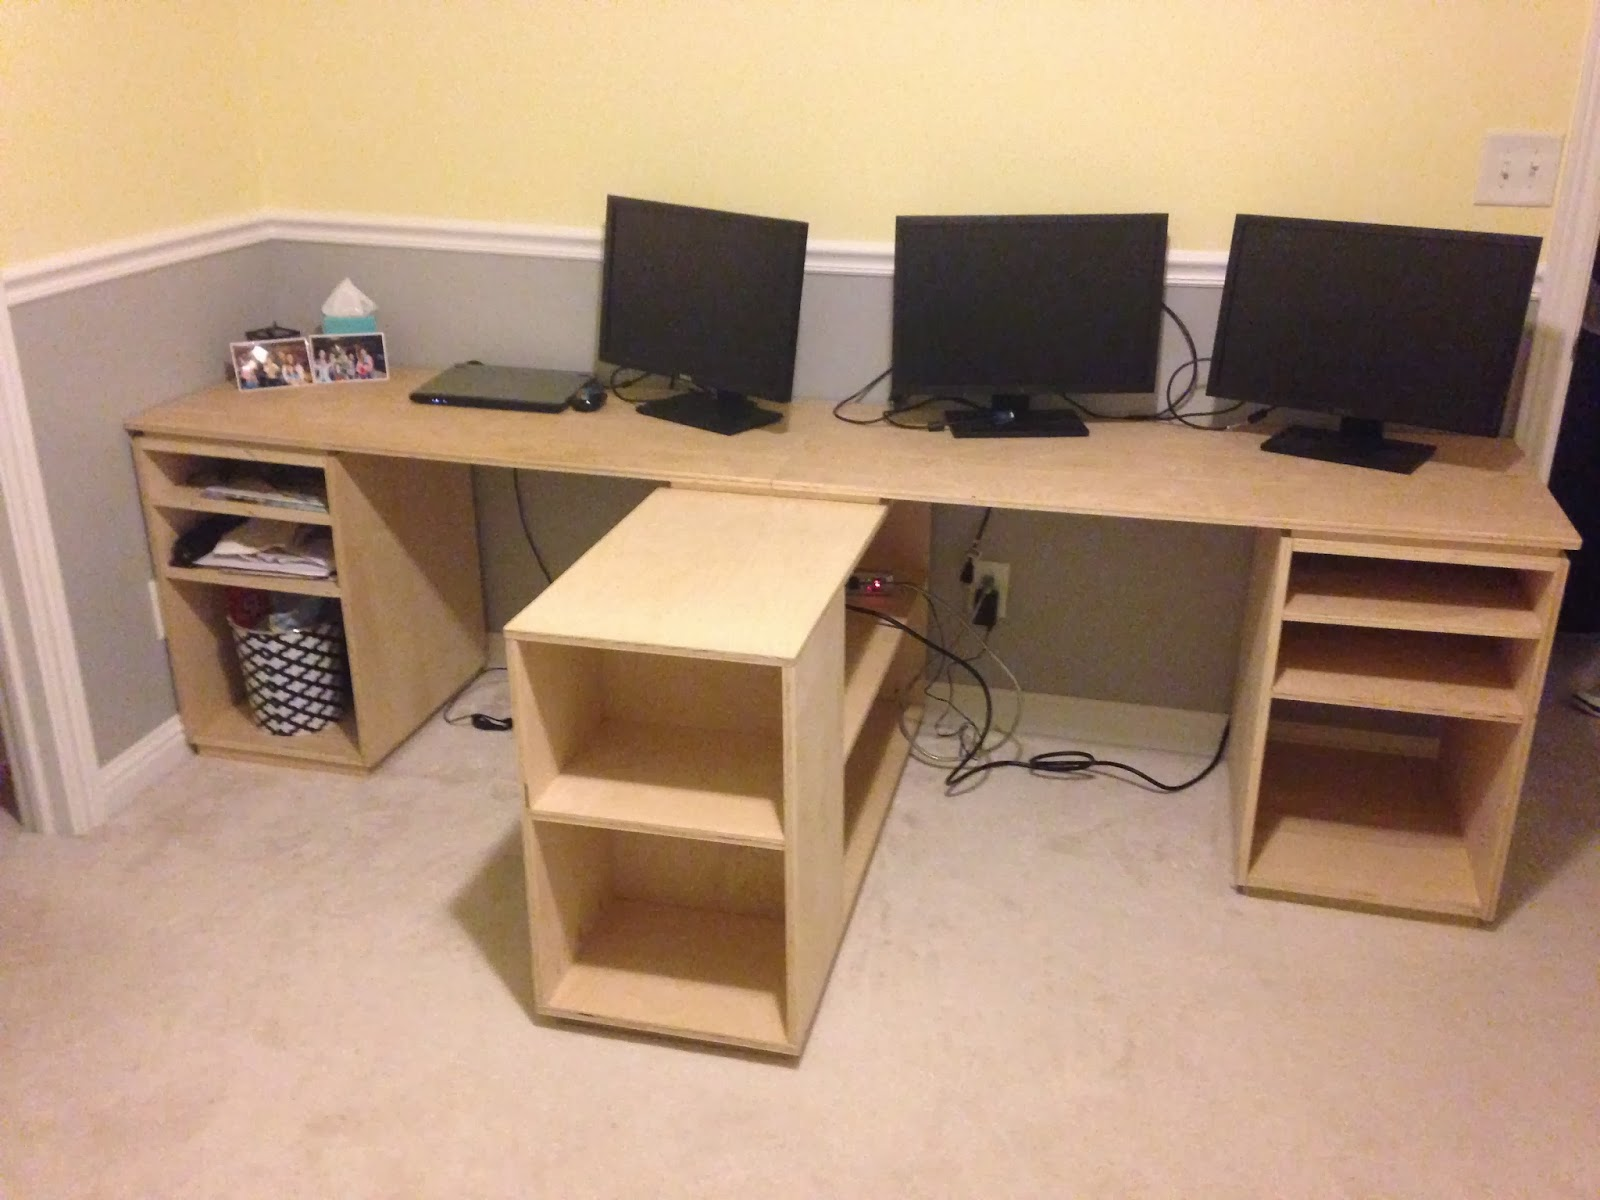 How To Build Office Desk. Home Office Desk Build Finished For Now How To